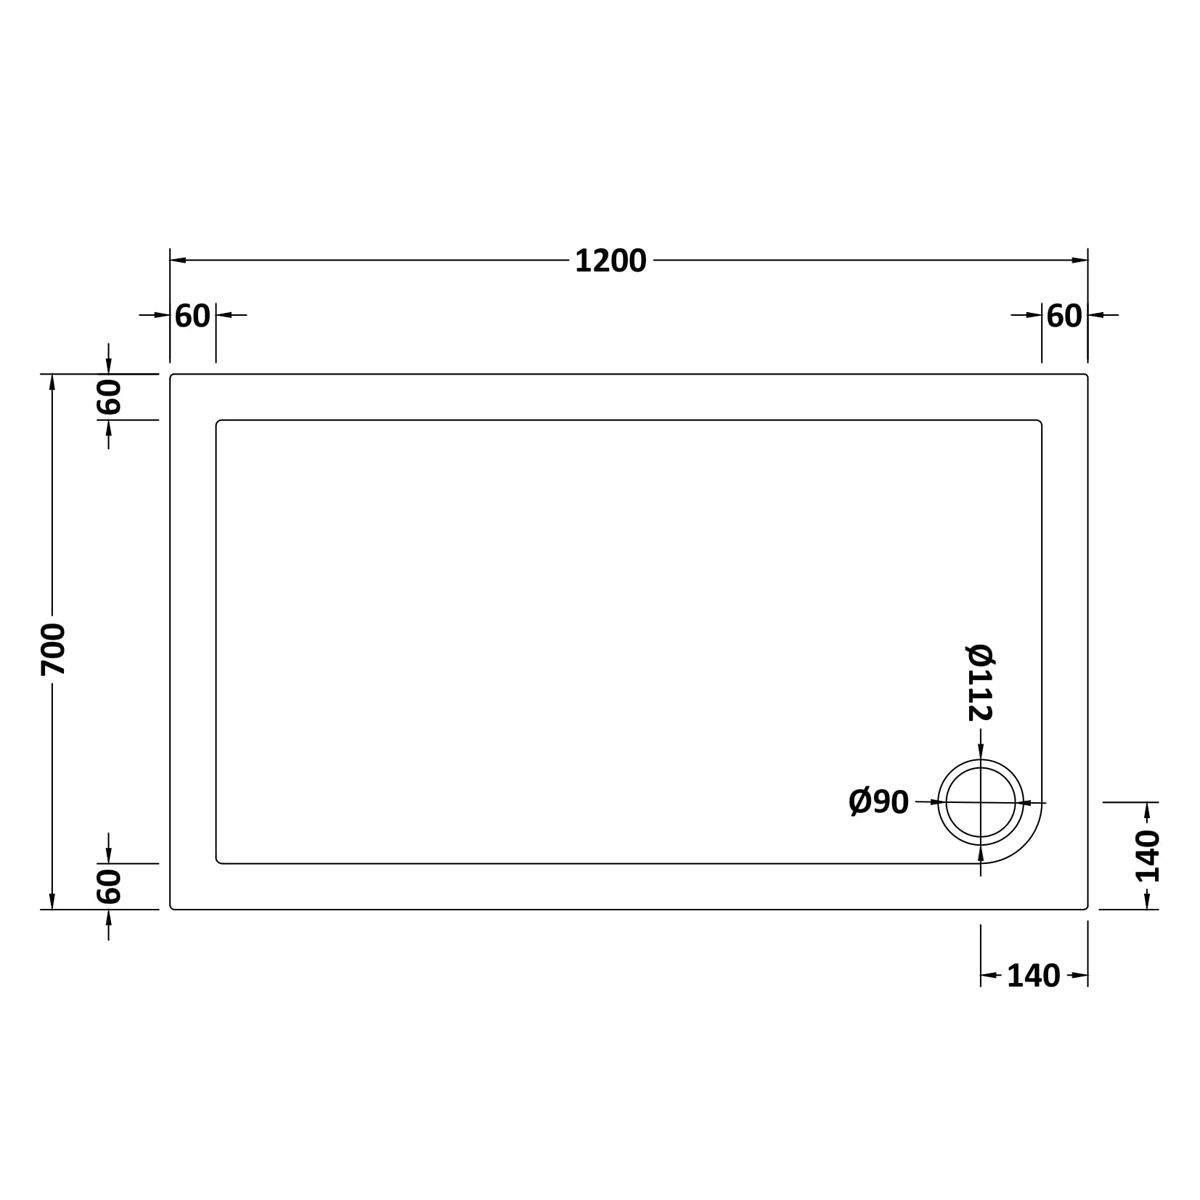 1200 x 700 Shower Tray Slate Grey Rectangular Low Profile by Pearlstone Dimensions